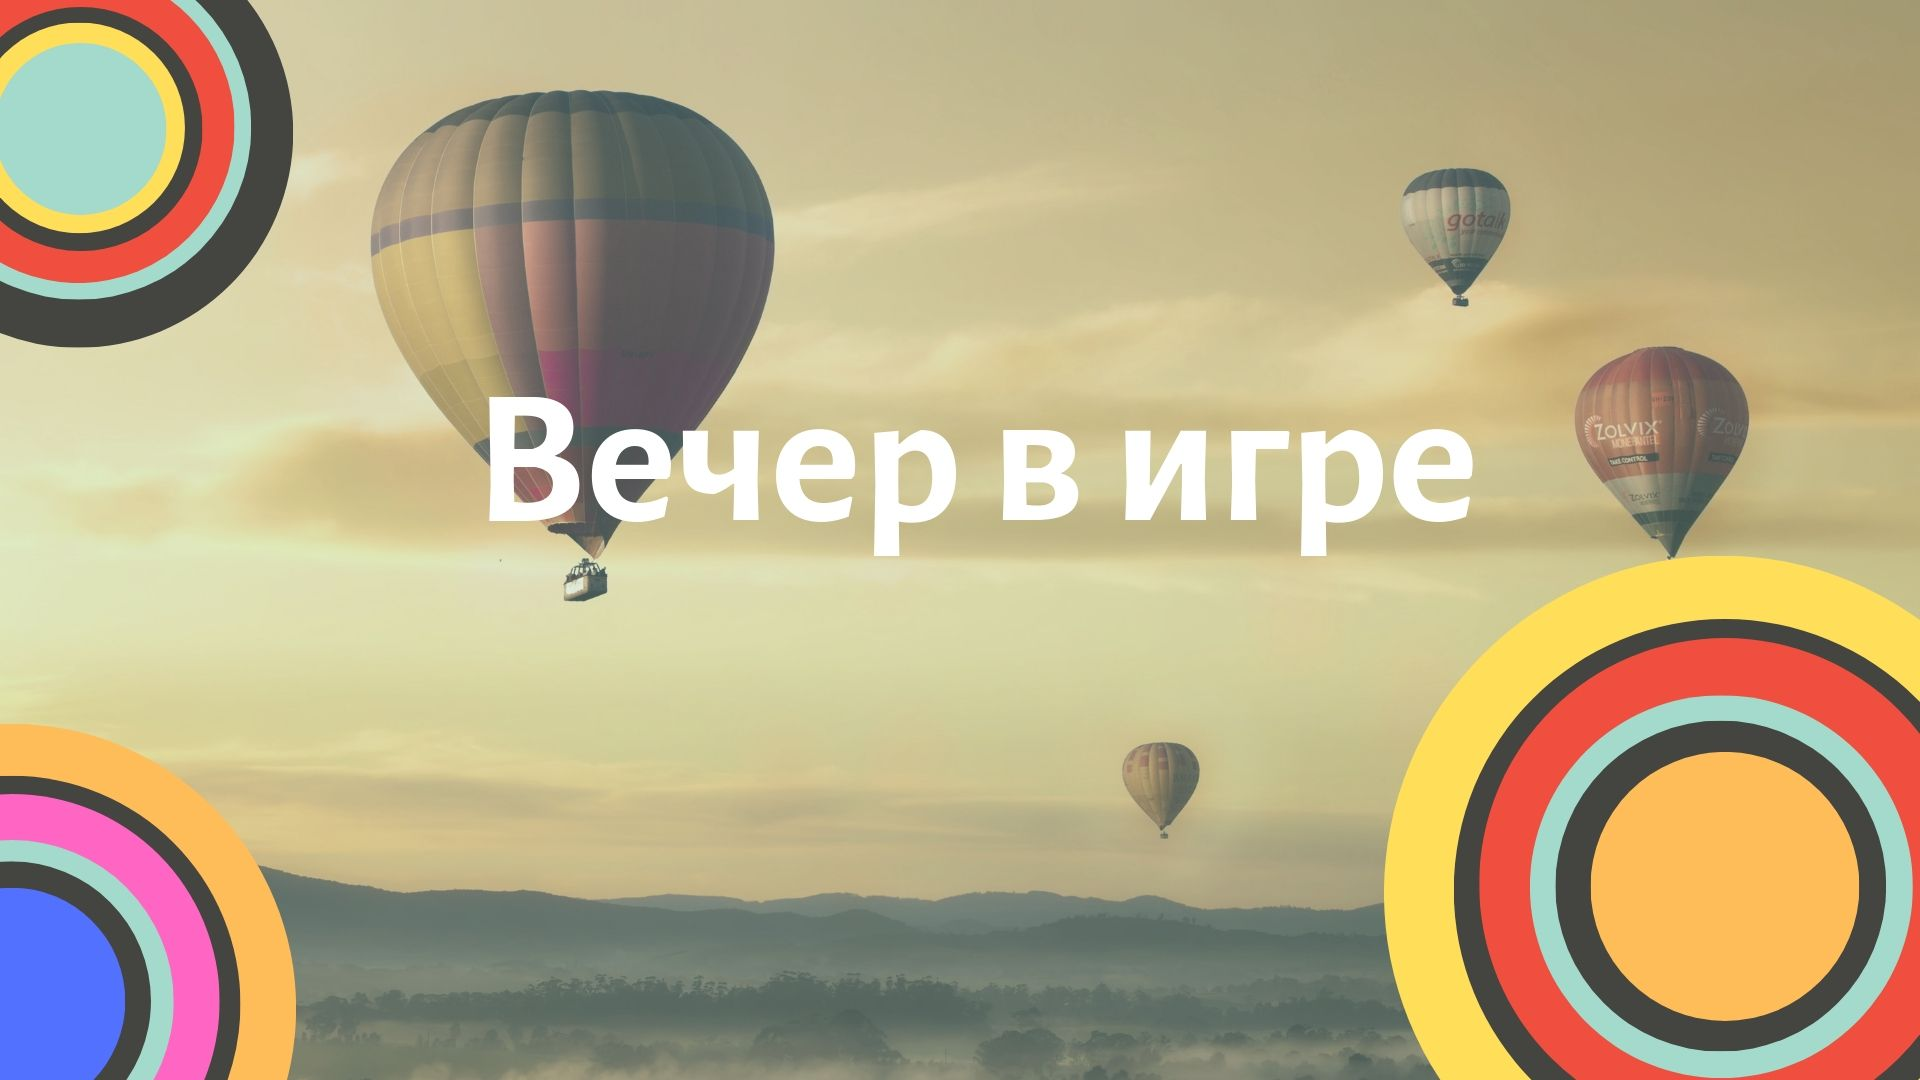 The brain is wider than the sky., копия